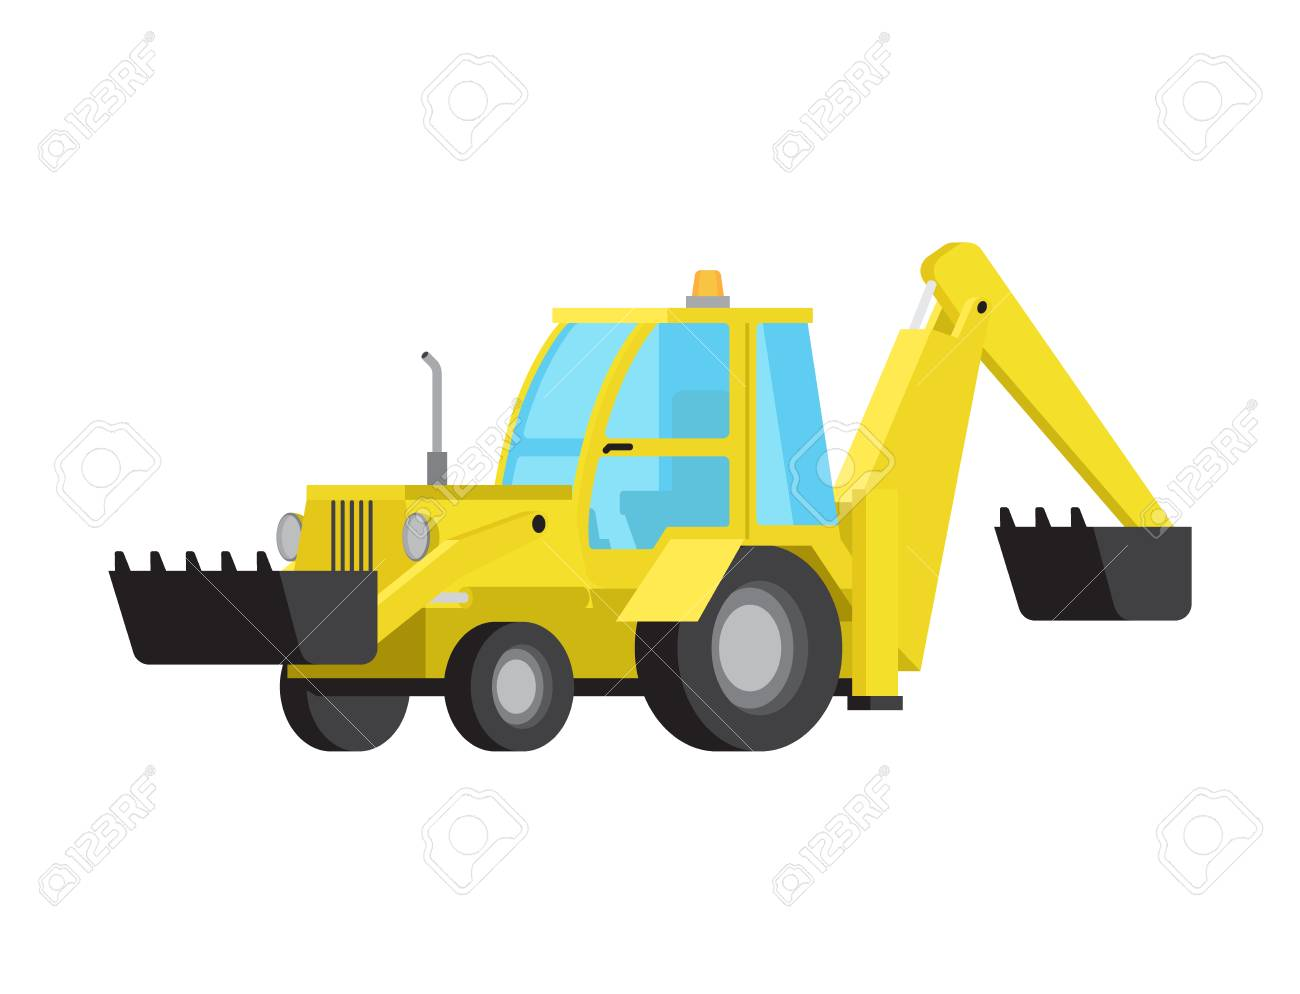 Loader with Excavator Bucket Flat Vector Isolated - 103227929